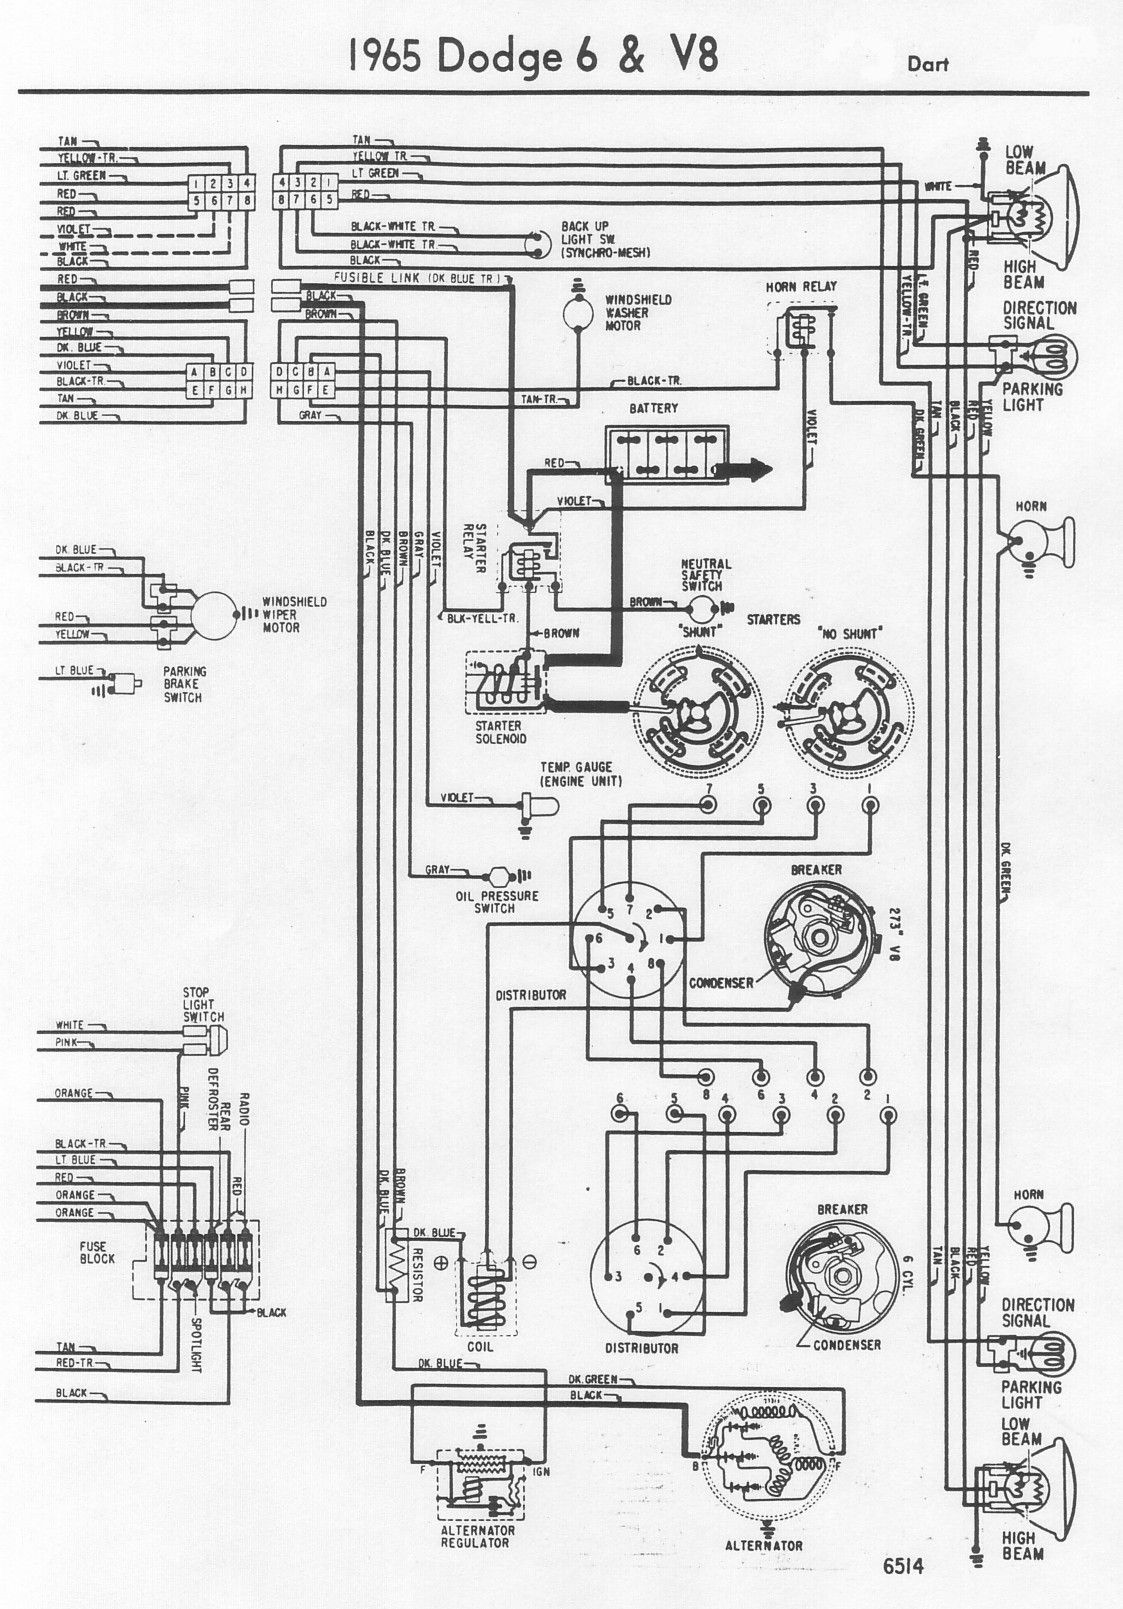 740C Wiring Diagram For 1968 Dodge Dart | Wiring LibraryWiring Library